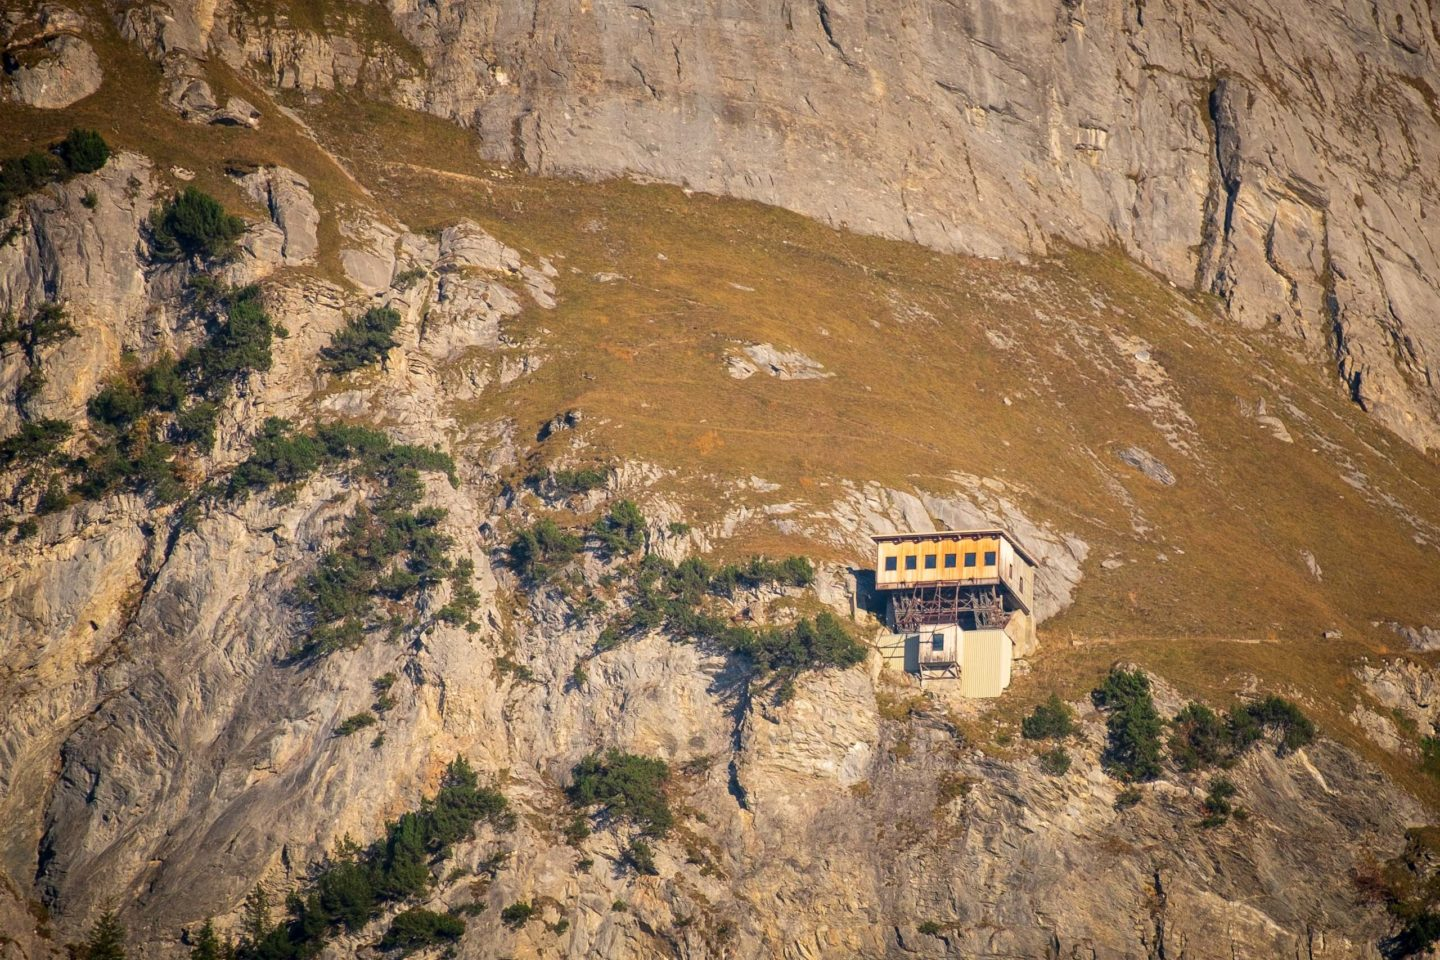 The old cable-car station on the Wetterhorn in Switzerland